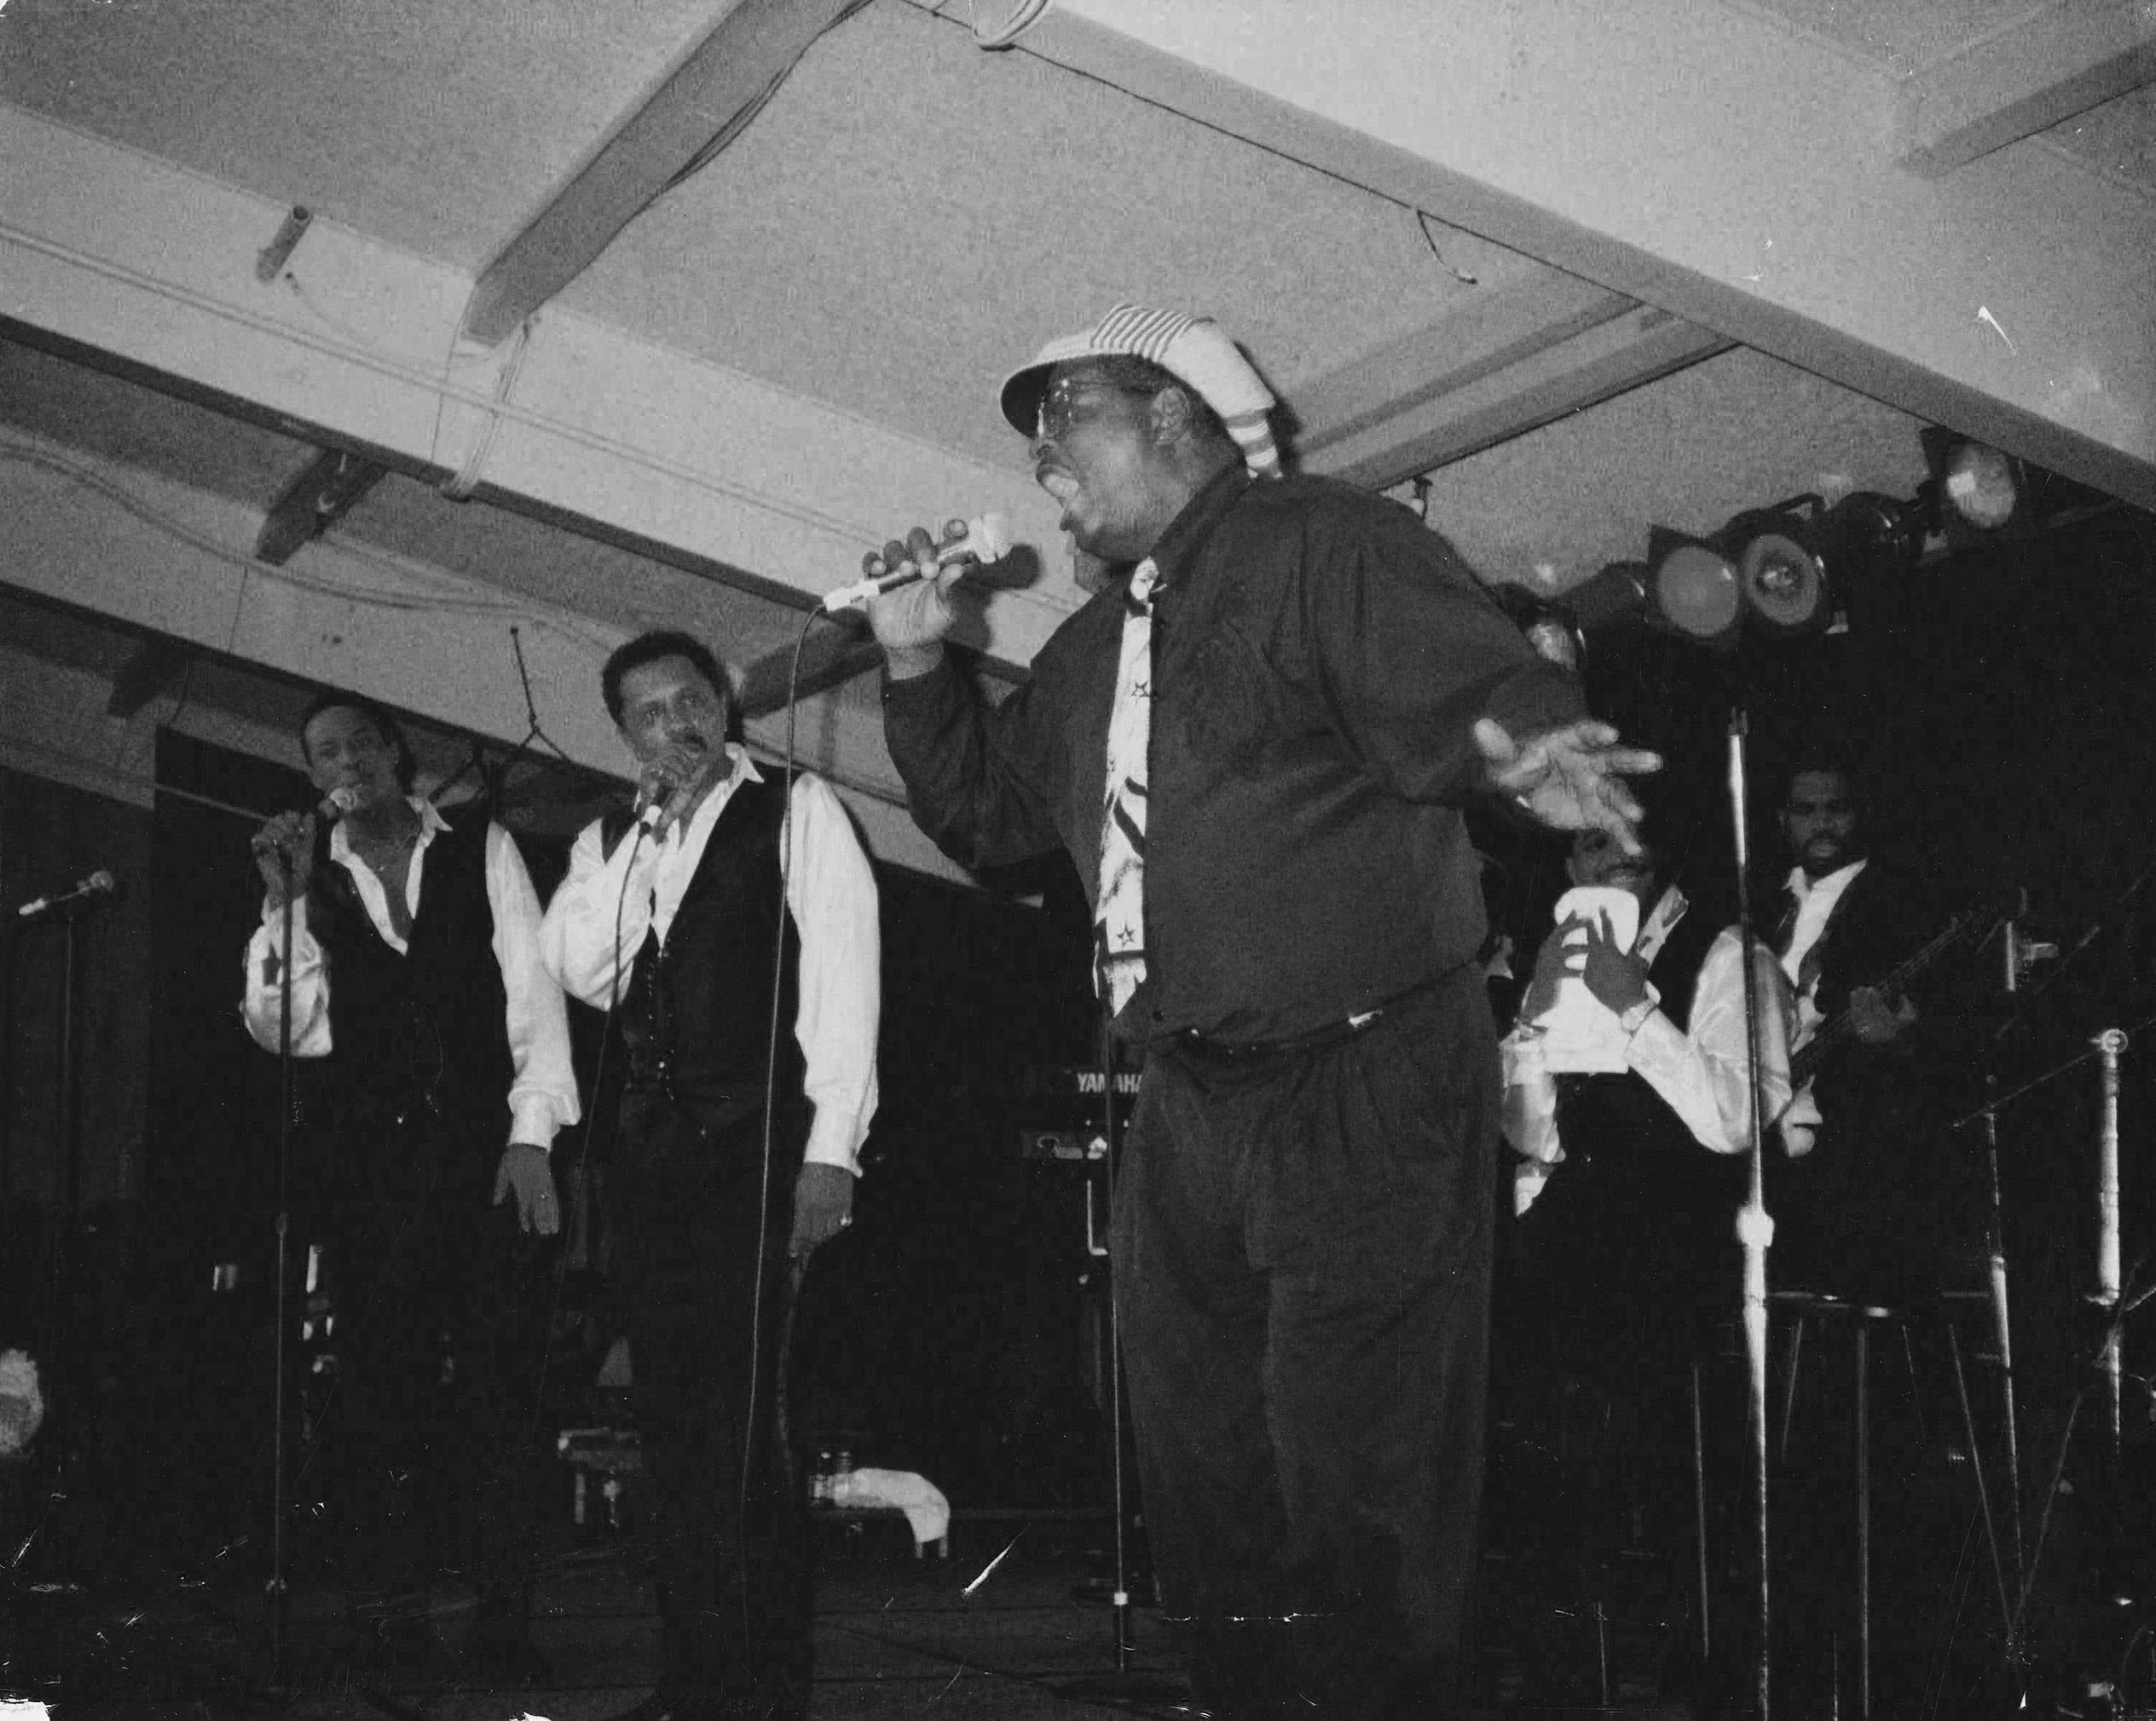 Jerry B. Bowden performing on stage with the Temptations